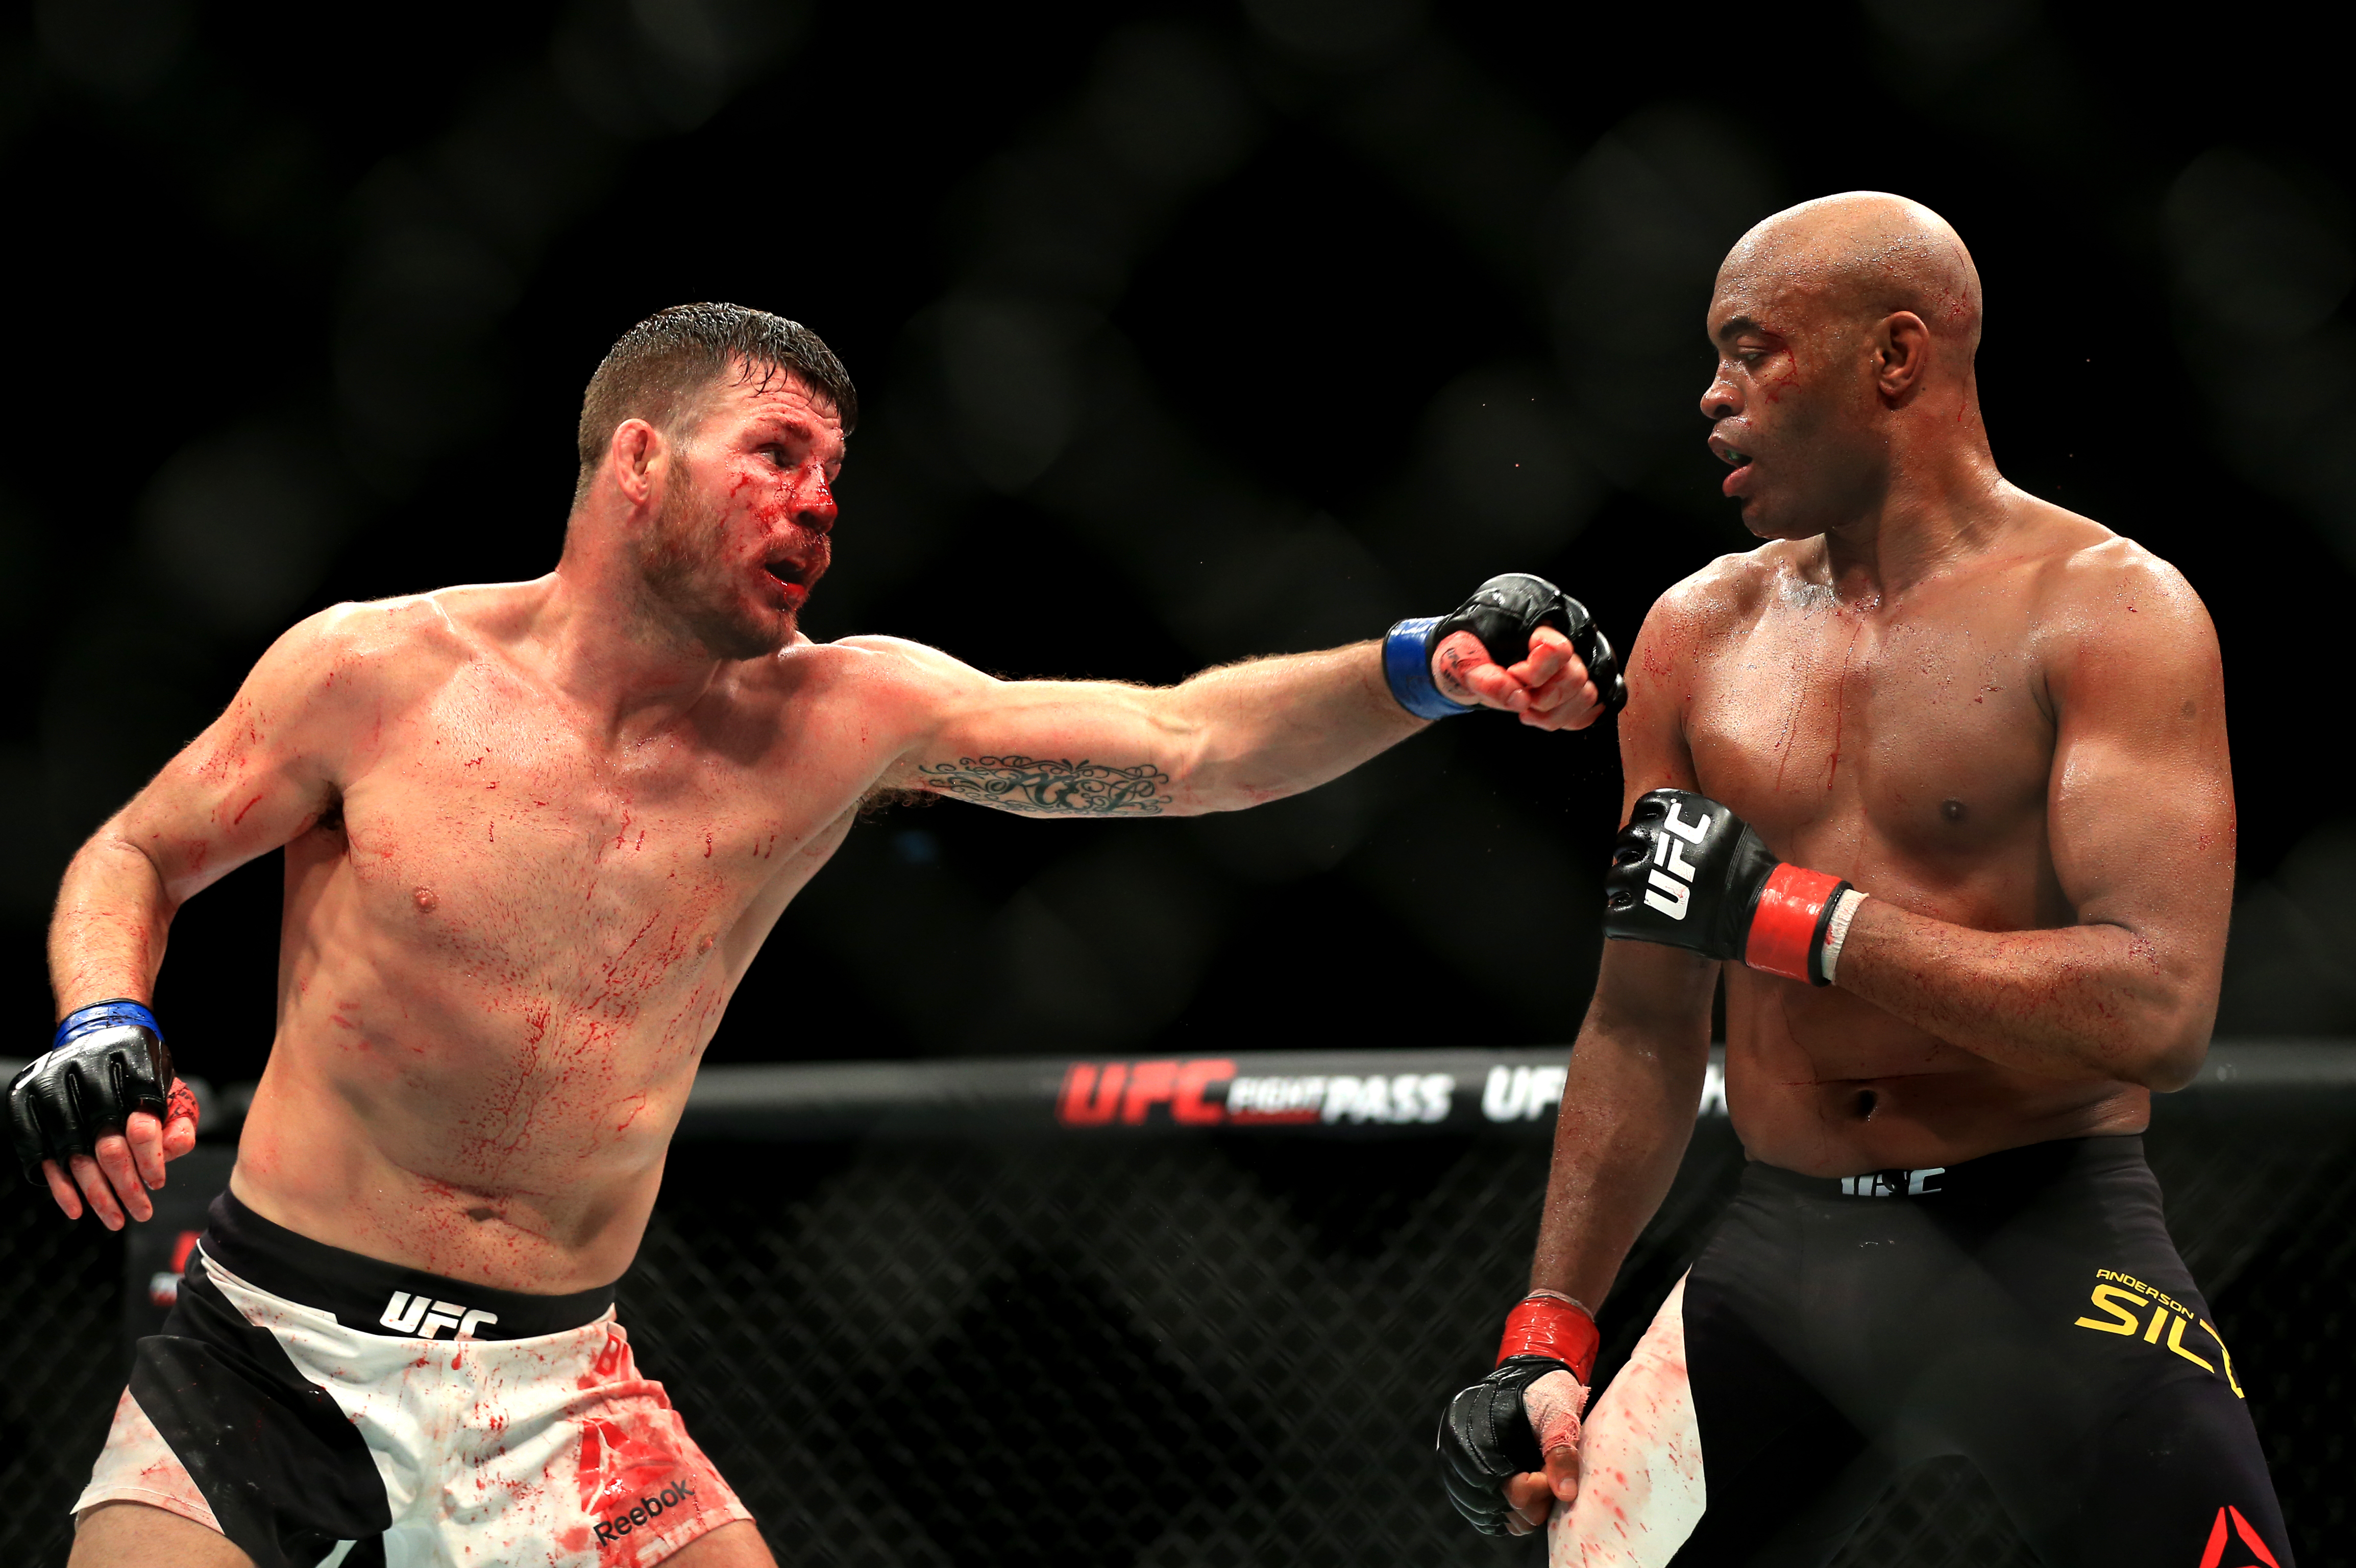 One of Silva's recent losses was against Brit Michael Bisping. Image: PA Images